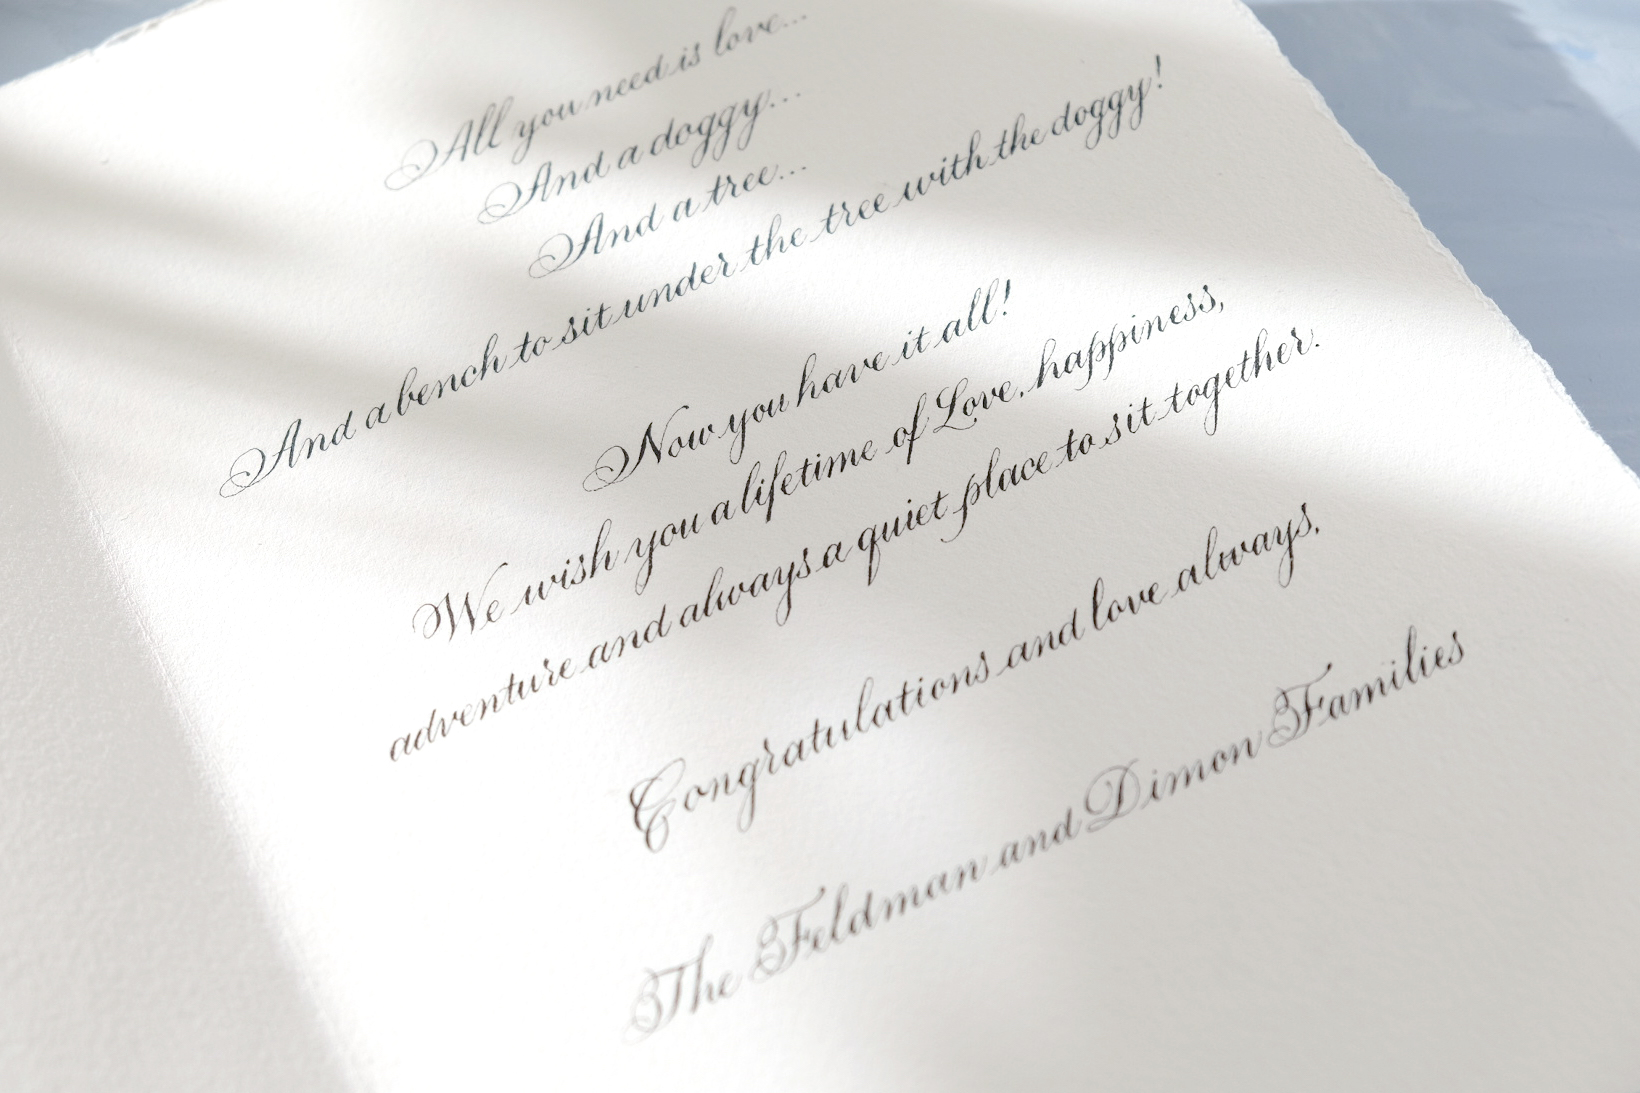 Wedding card written in calligraphy | by Chavelli www.chavelli.com